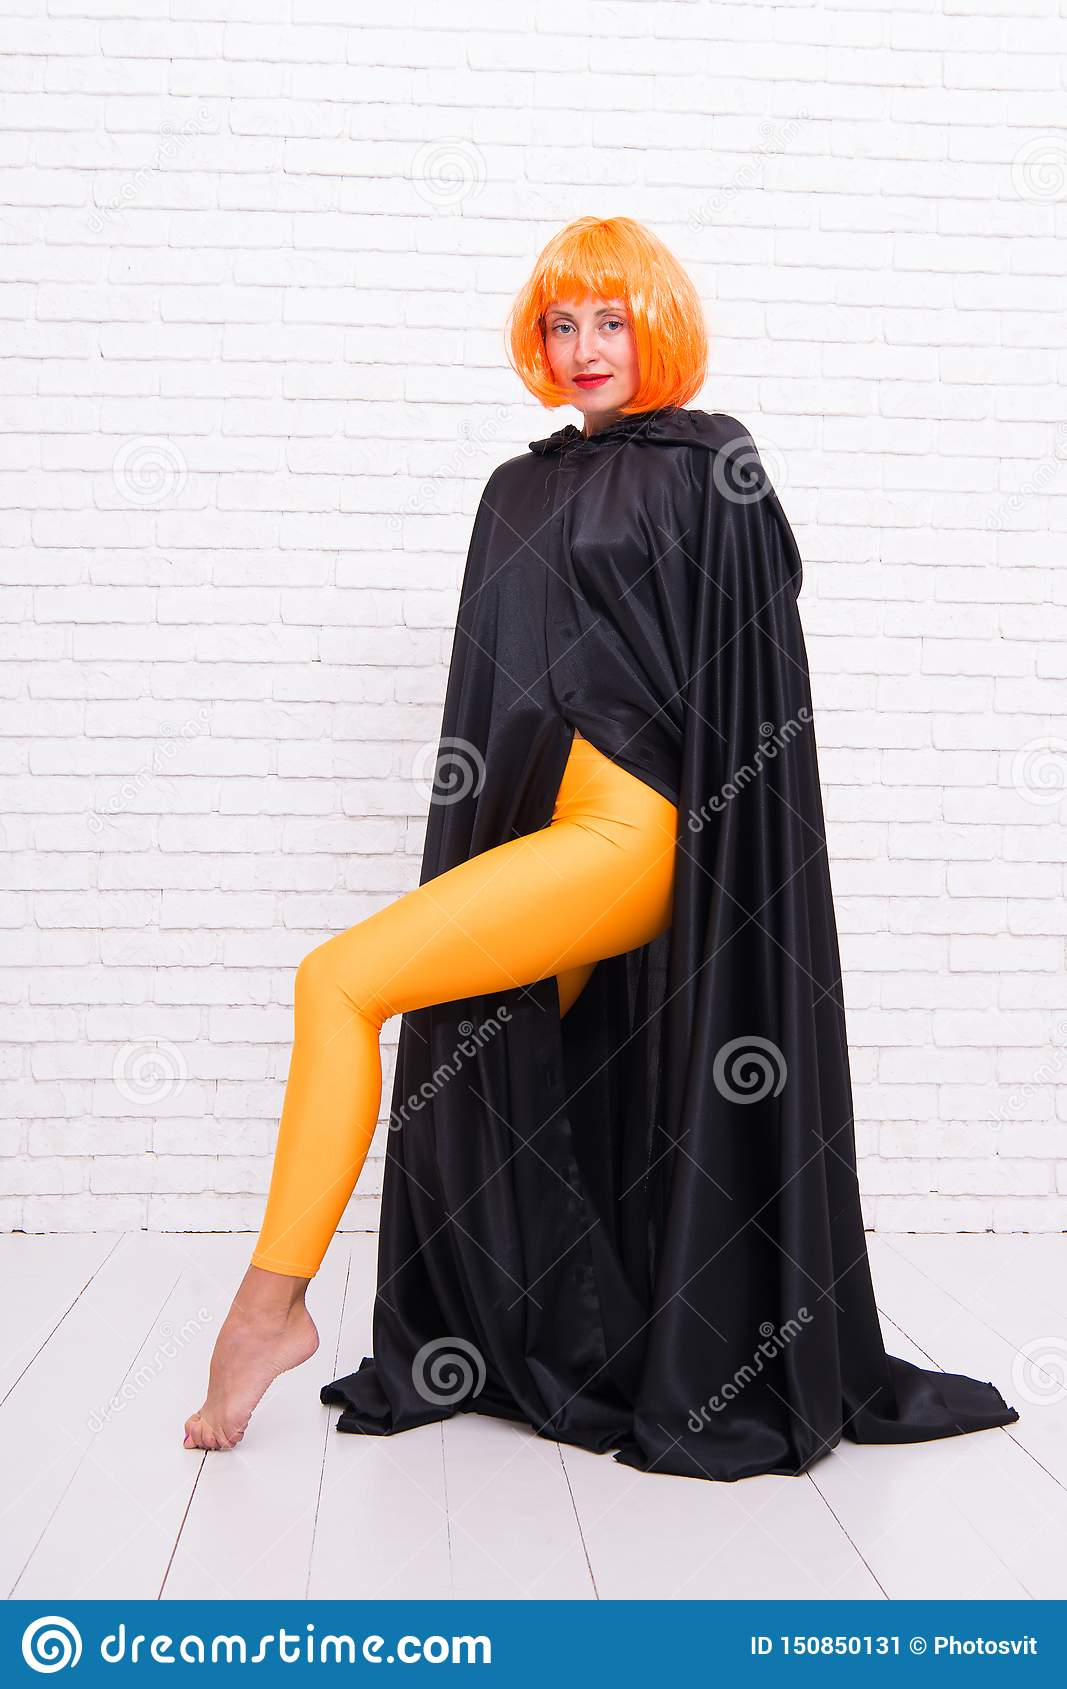 Funky style beauty. Sensual woman in fashion style on white brickwall. Fashion model wearing orange wig hair style and